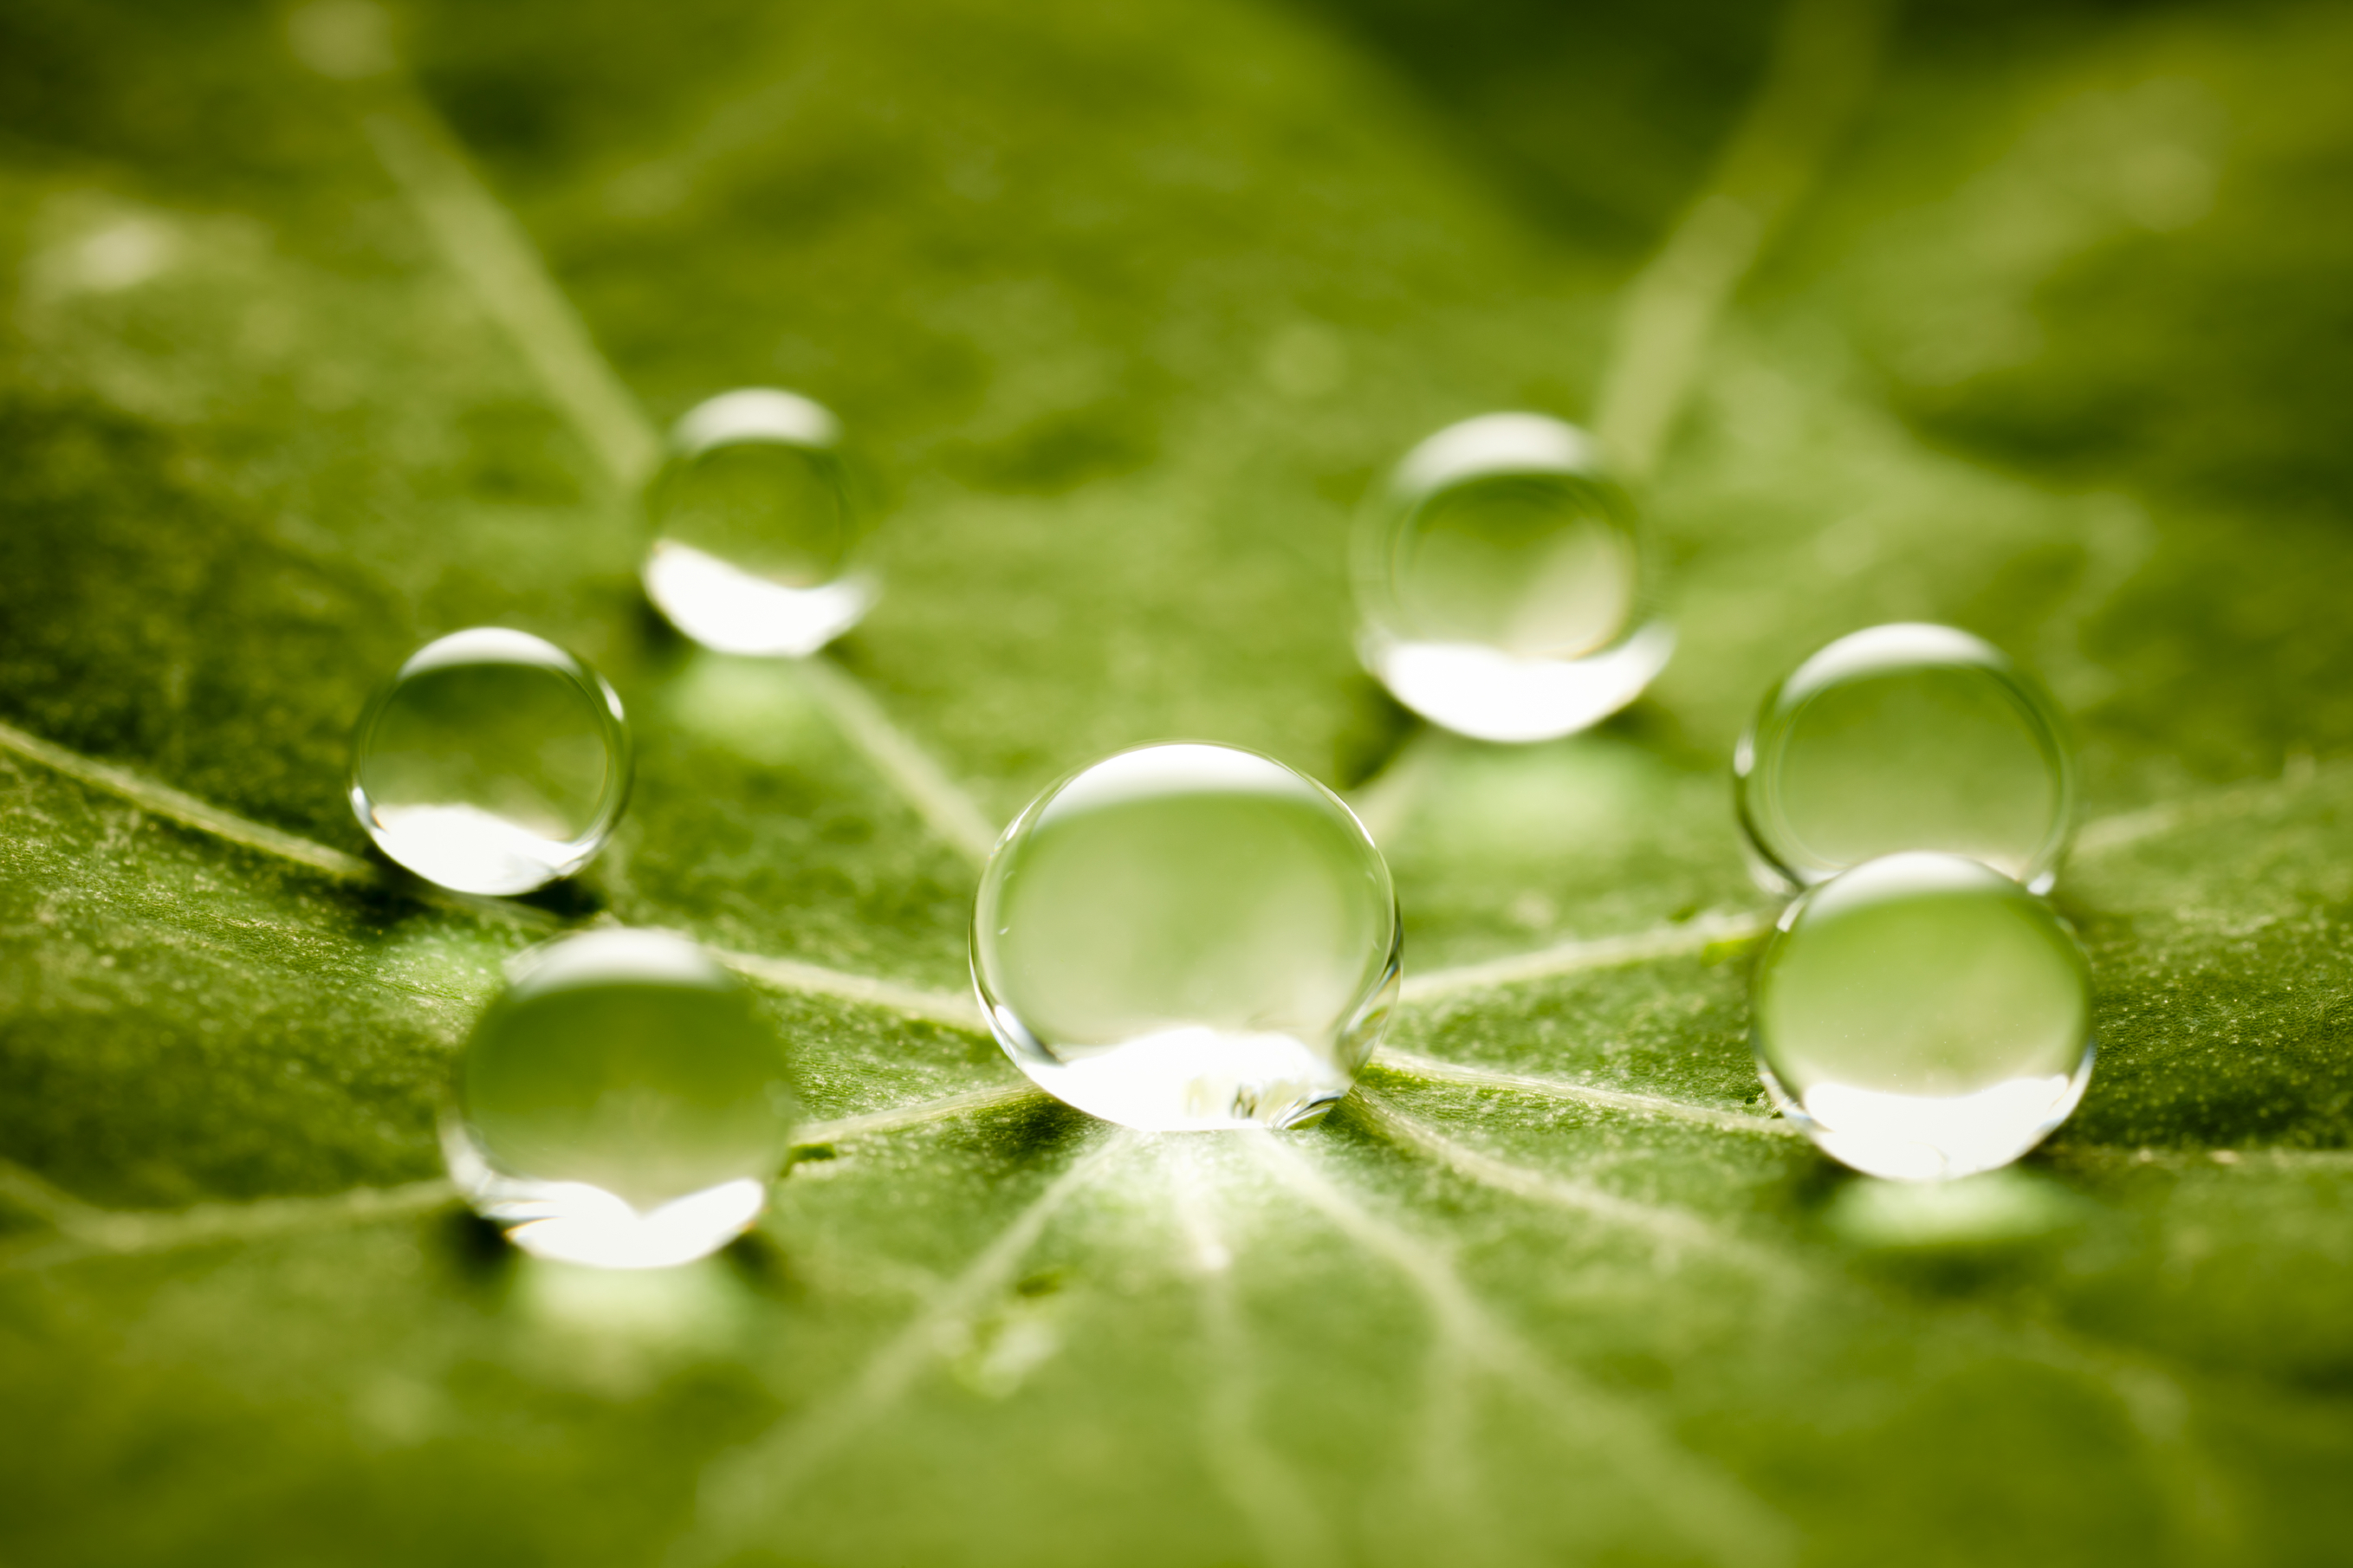 dew_drops_on_leaf